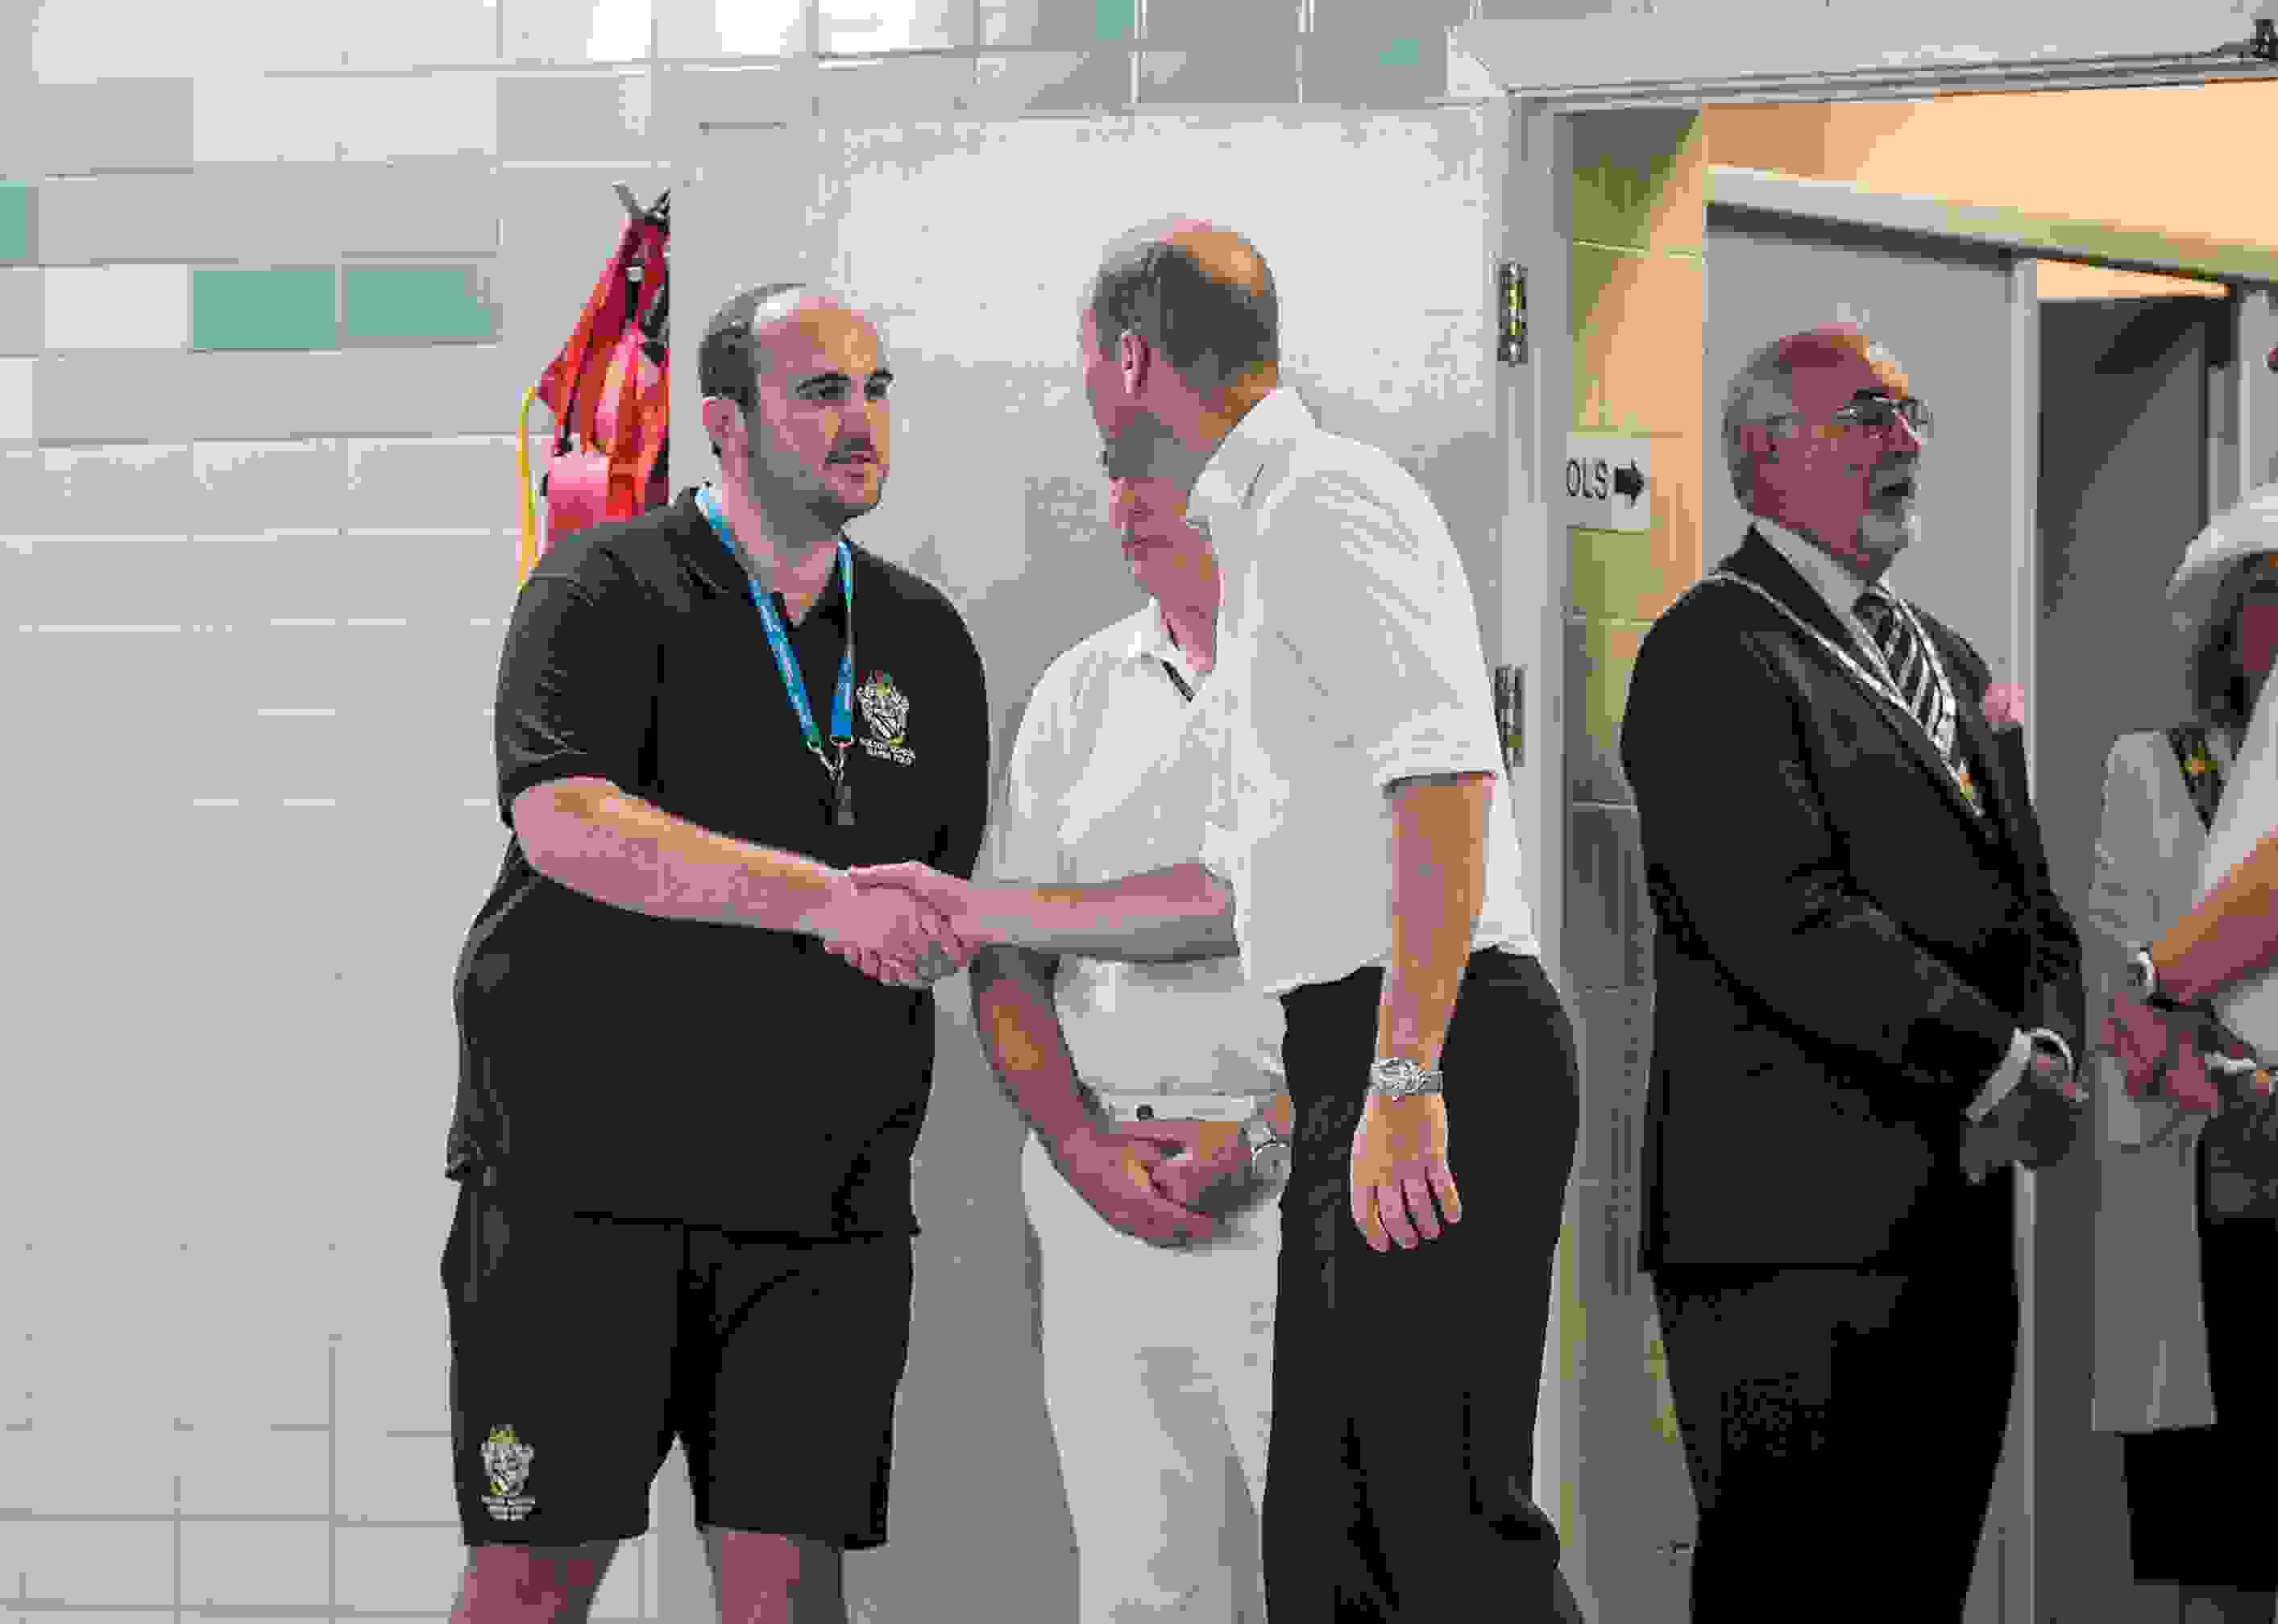 Water Polo Royal Visit - Andy McGinty shaking hands with Prince William